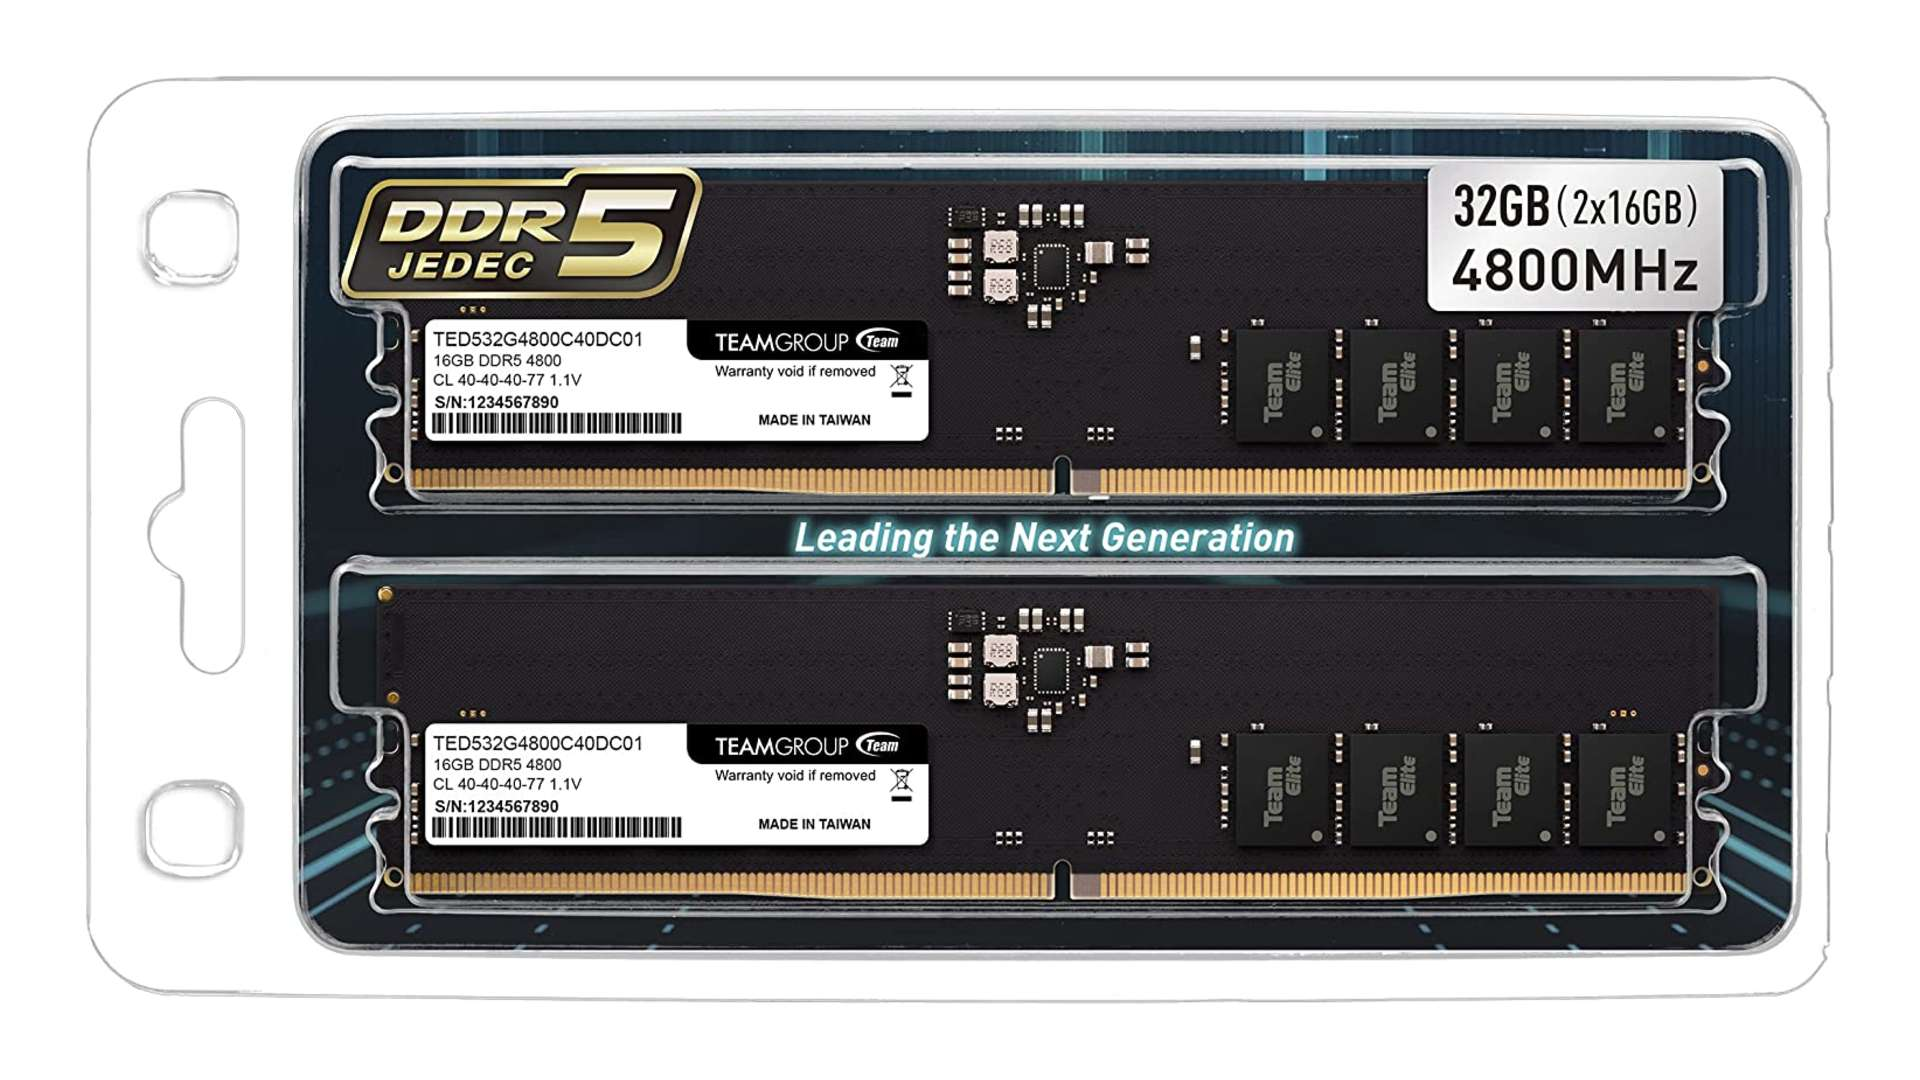 Amazon lists the first set of DDR5 RAM with no motherboard to plug it into